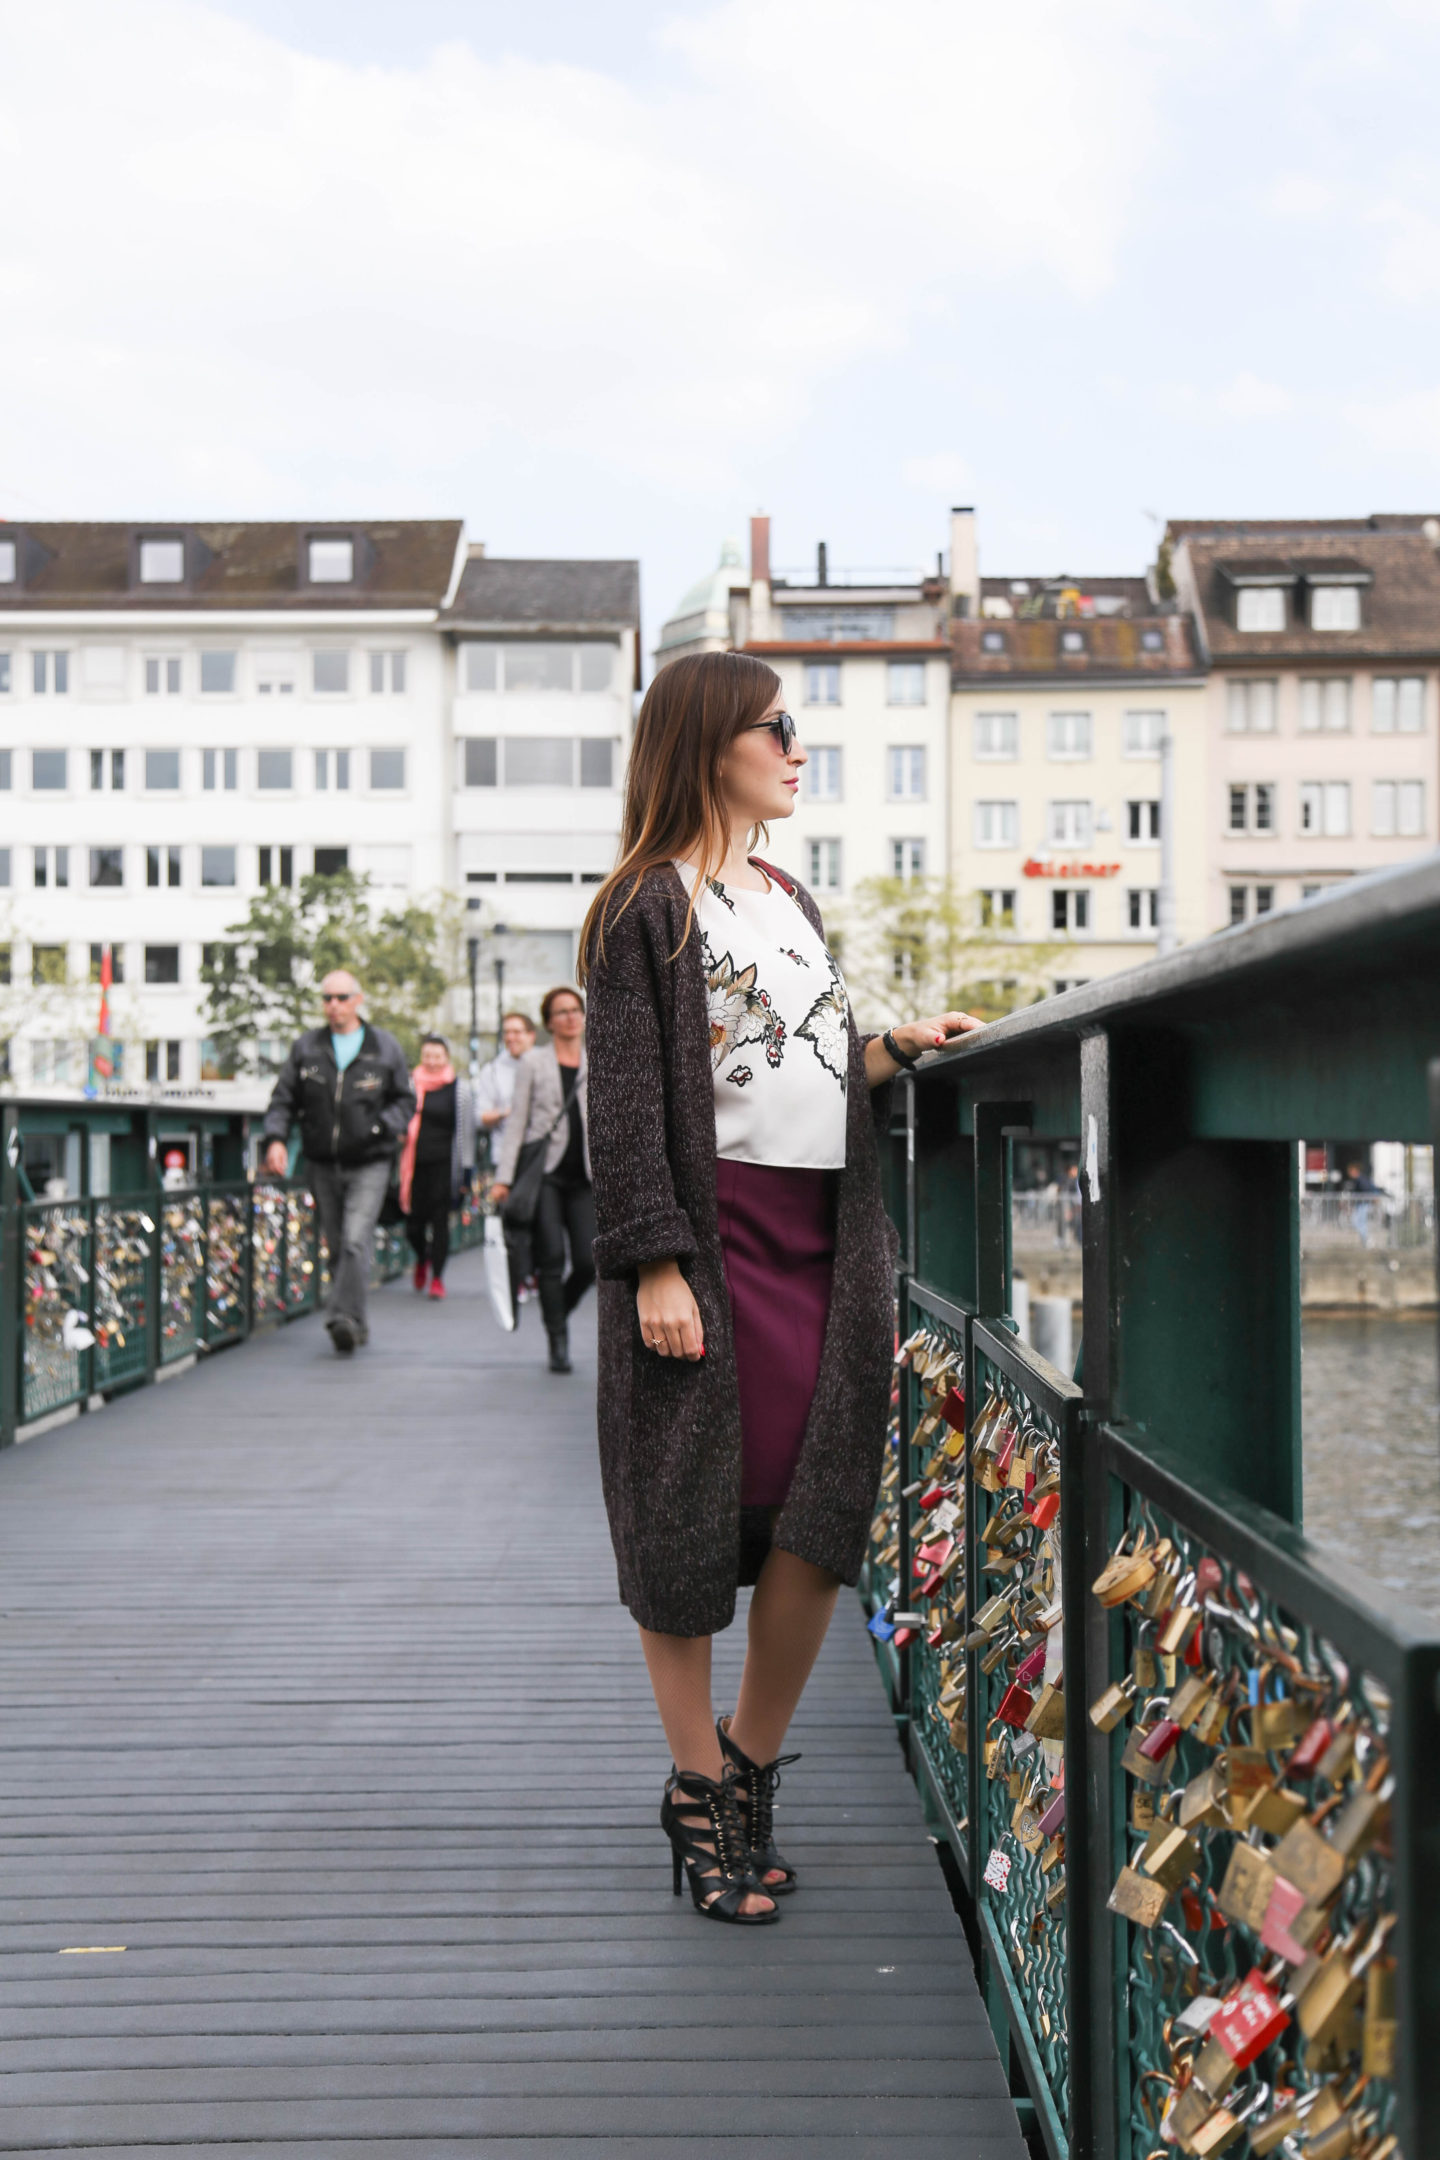 HOW TO WEAR LONG CARDIGAN IN SPRING